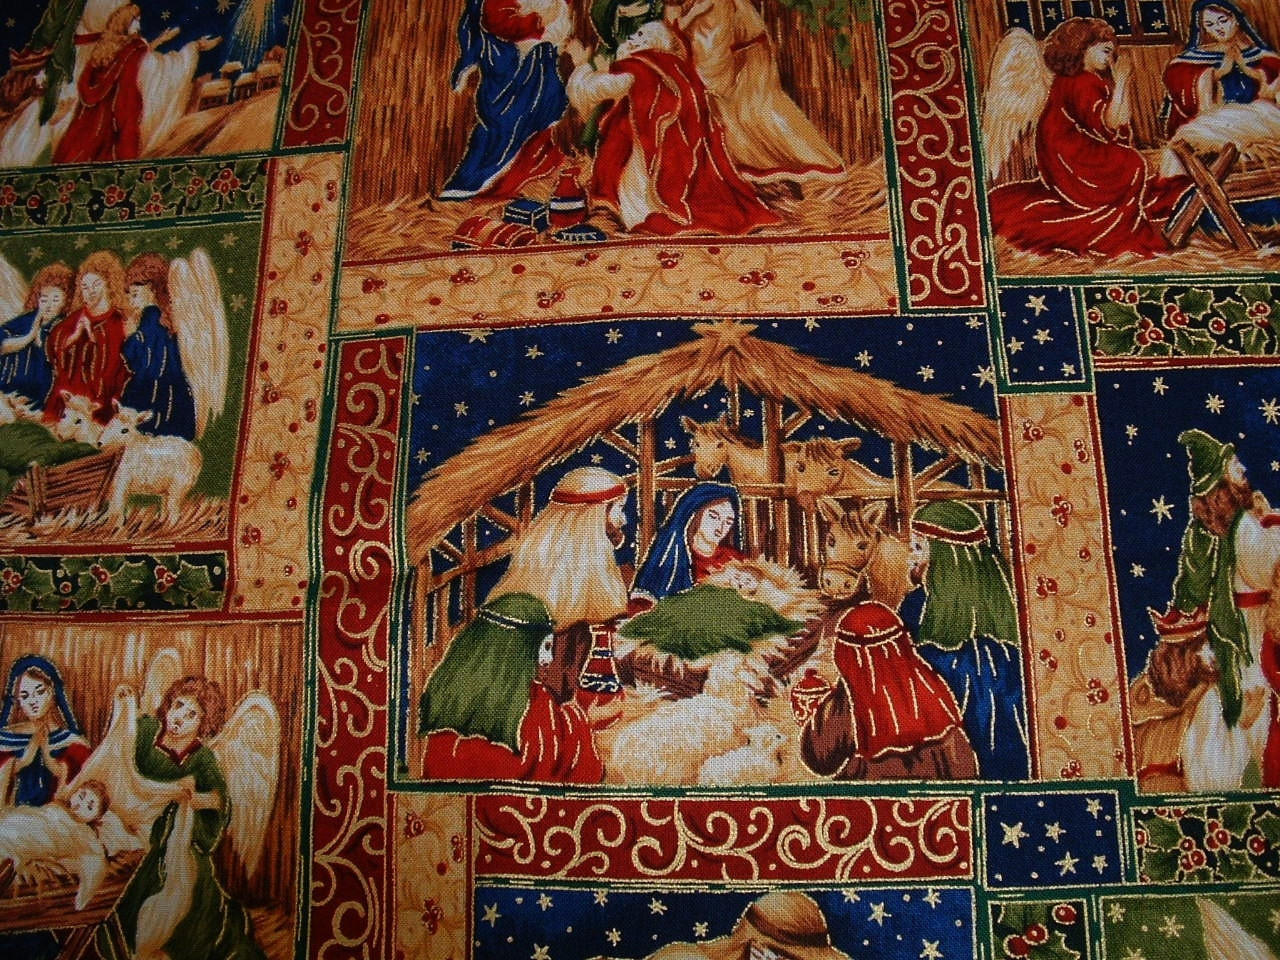 Nativity Scene Fabric Christmas Decor 2 2 3 By